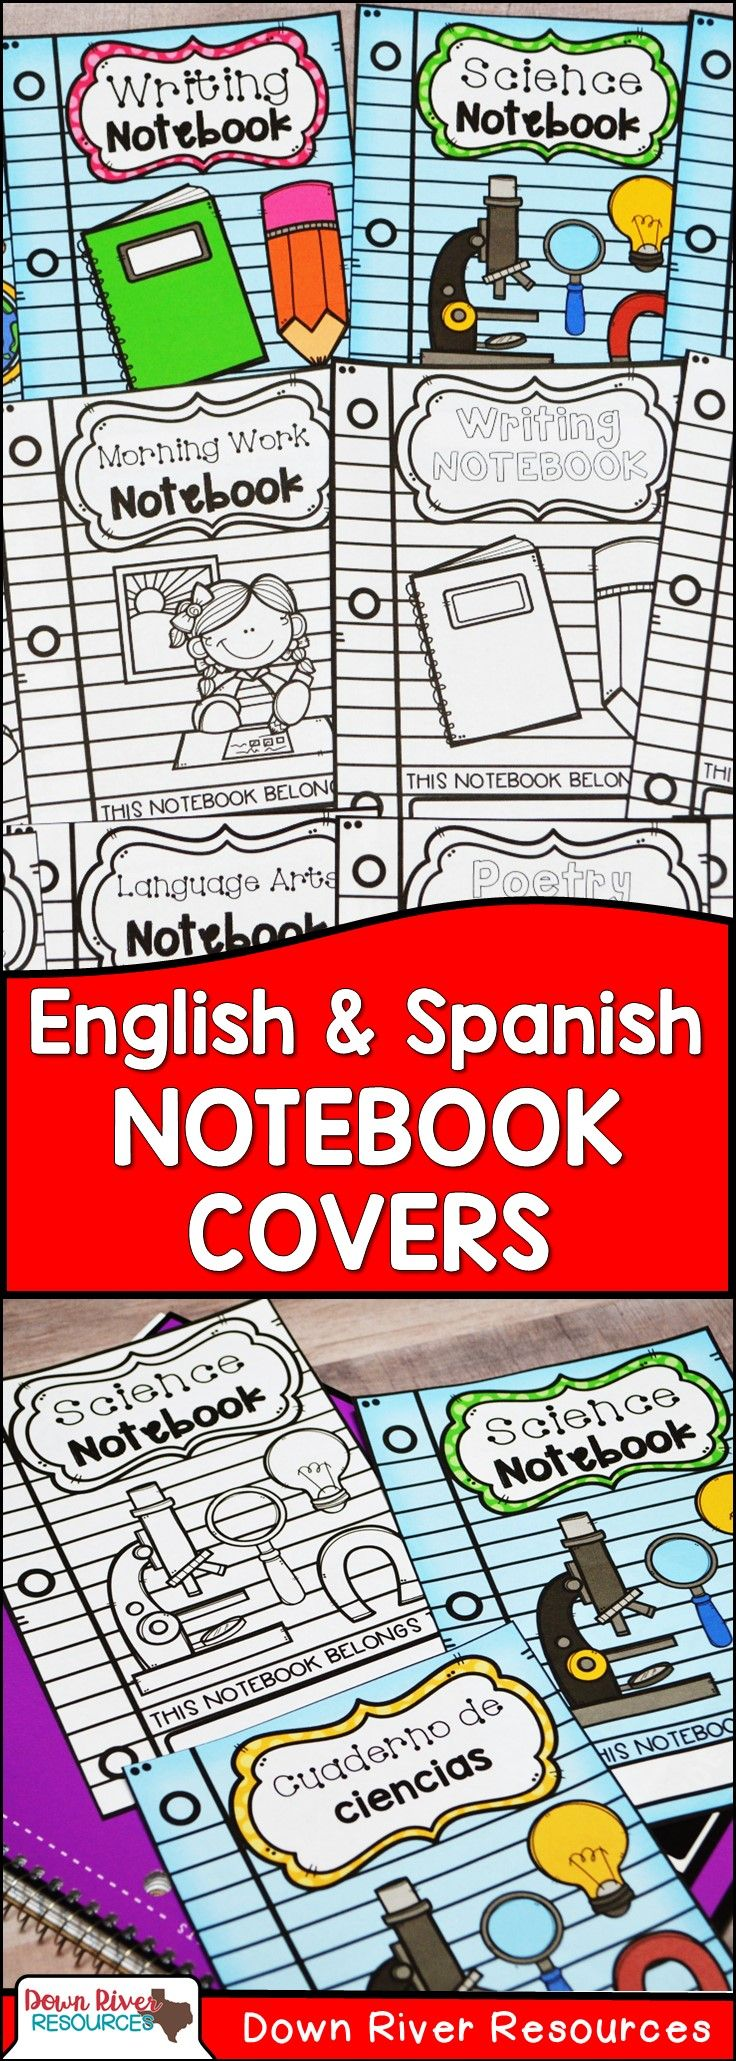 Interactive Notebook Covers | Notebook Covers | Journal Covers | Spanish Notebook Covers | English Notebook Covers | Covers for Notebooks | Classroom Organization | Notebook Labels | Math Notebook | Science Notebook | Language Arts Notebook | Social Studies Notebook